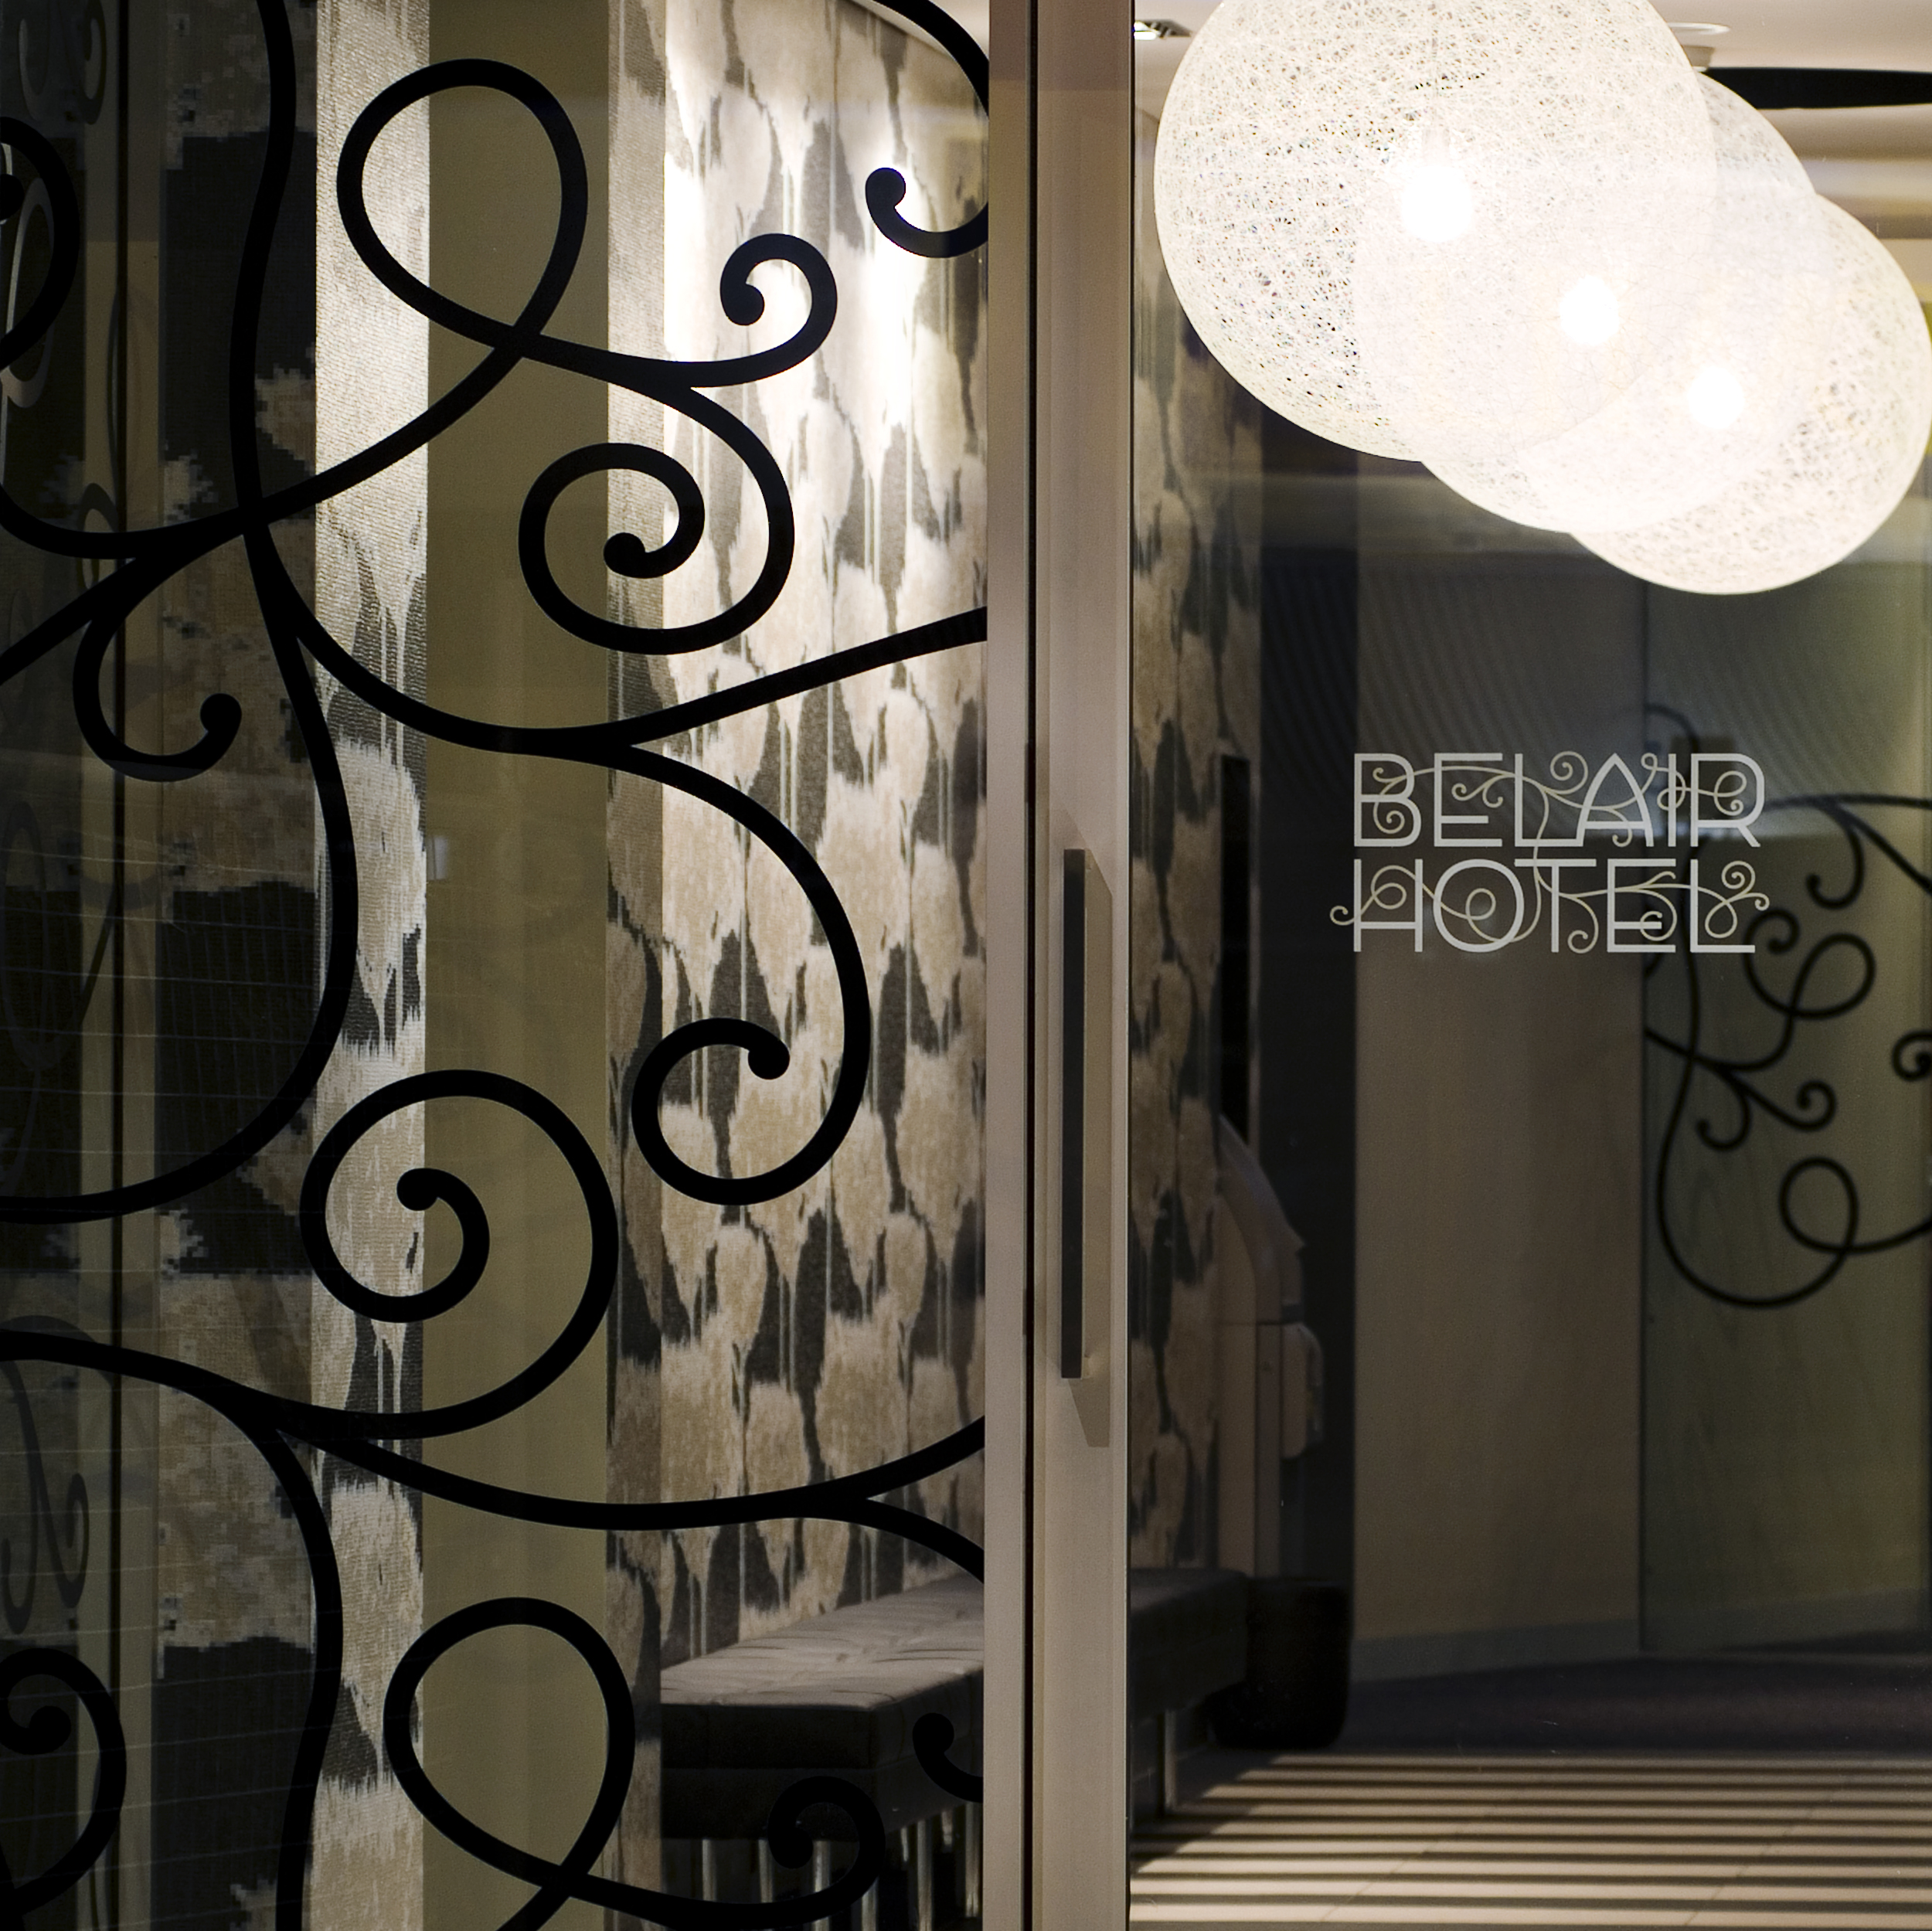 Project:  South Australian Design Awards 2009  Client:  Belair Hotel  Award:  Award of Merit – Built Environment